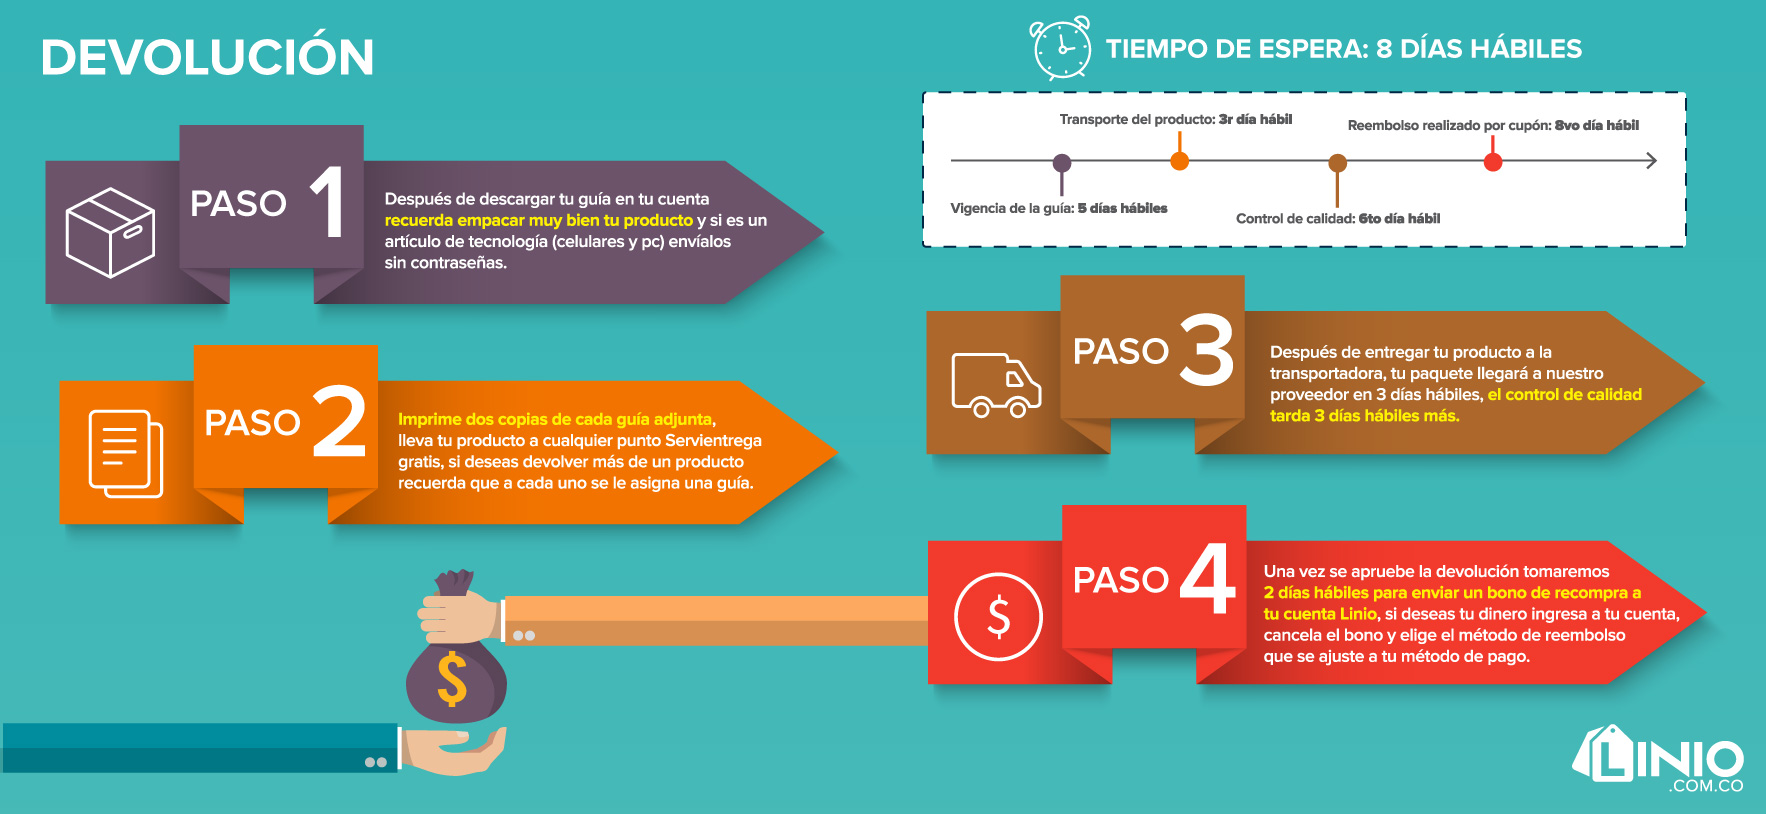 Infografia Retracto